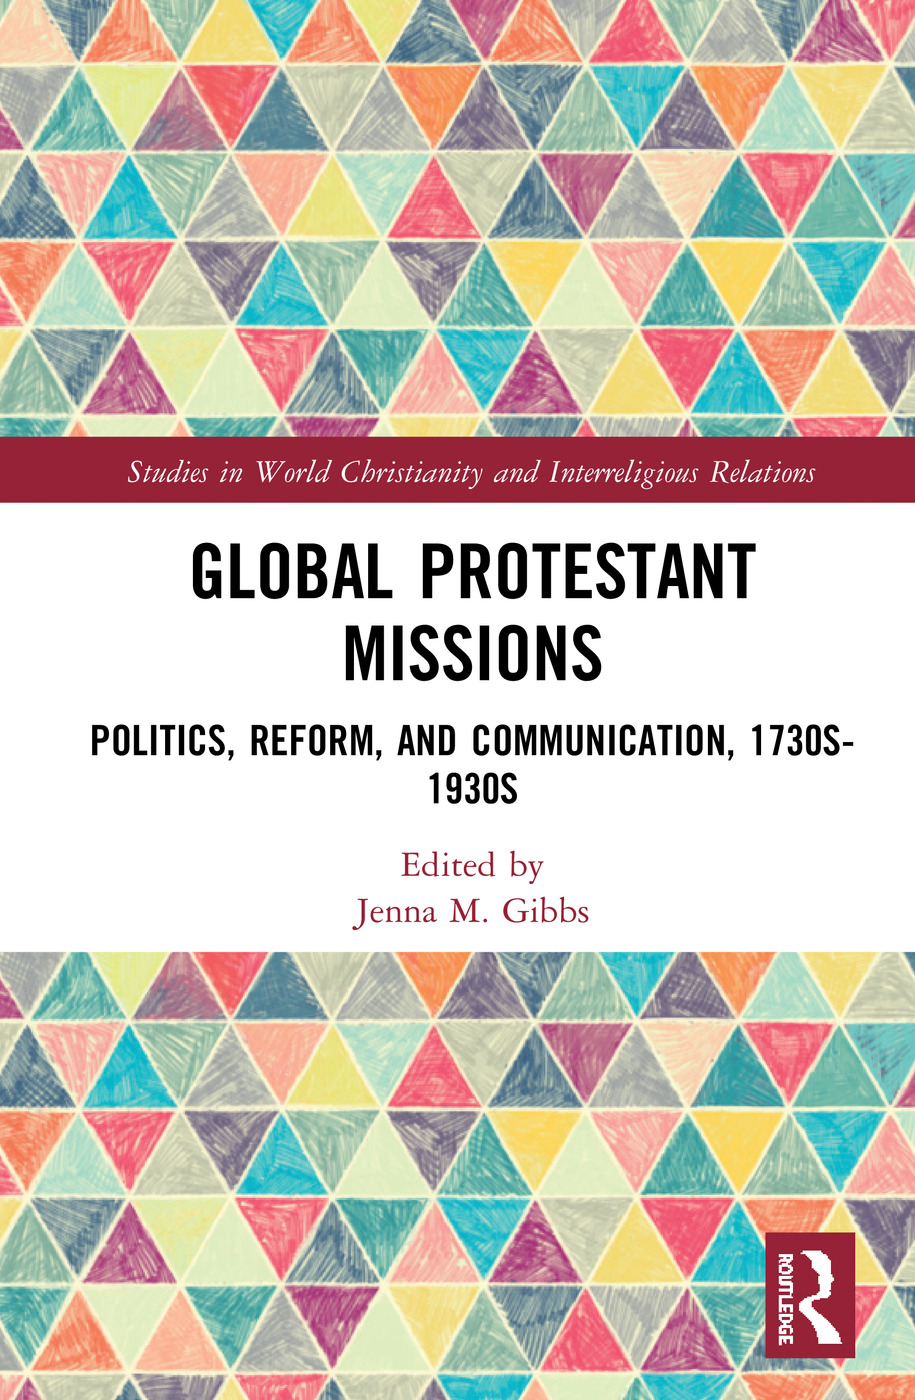 Global Protestant Missions: Politics, Reform, and Communication, 1730s-1930s book cover